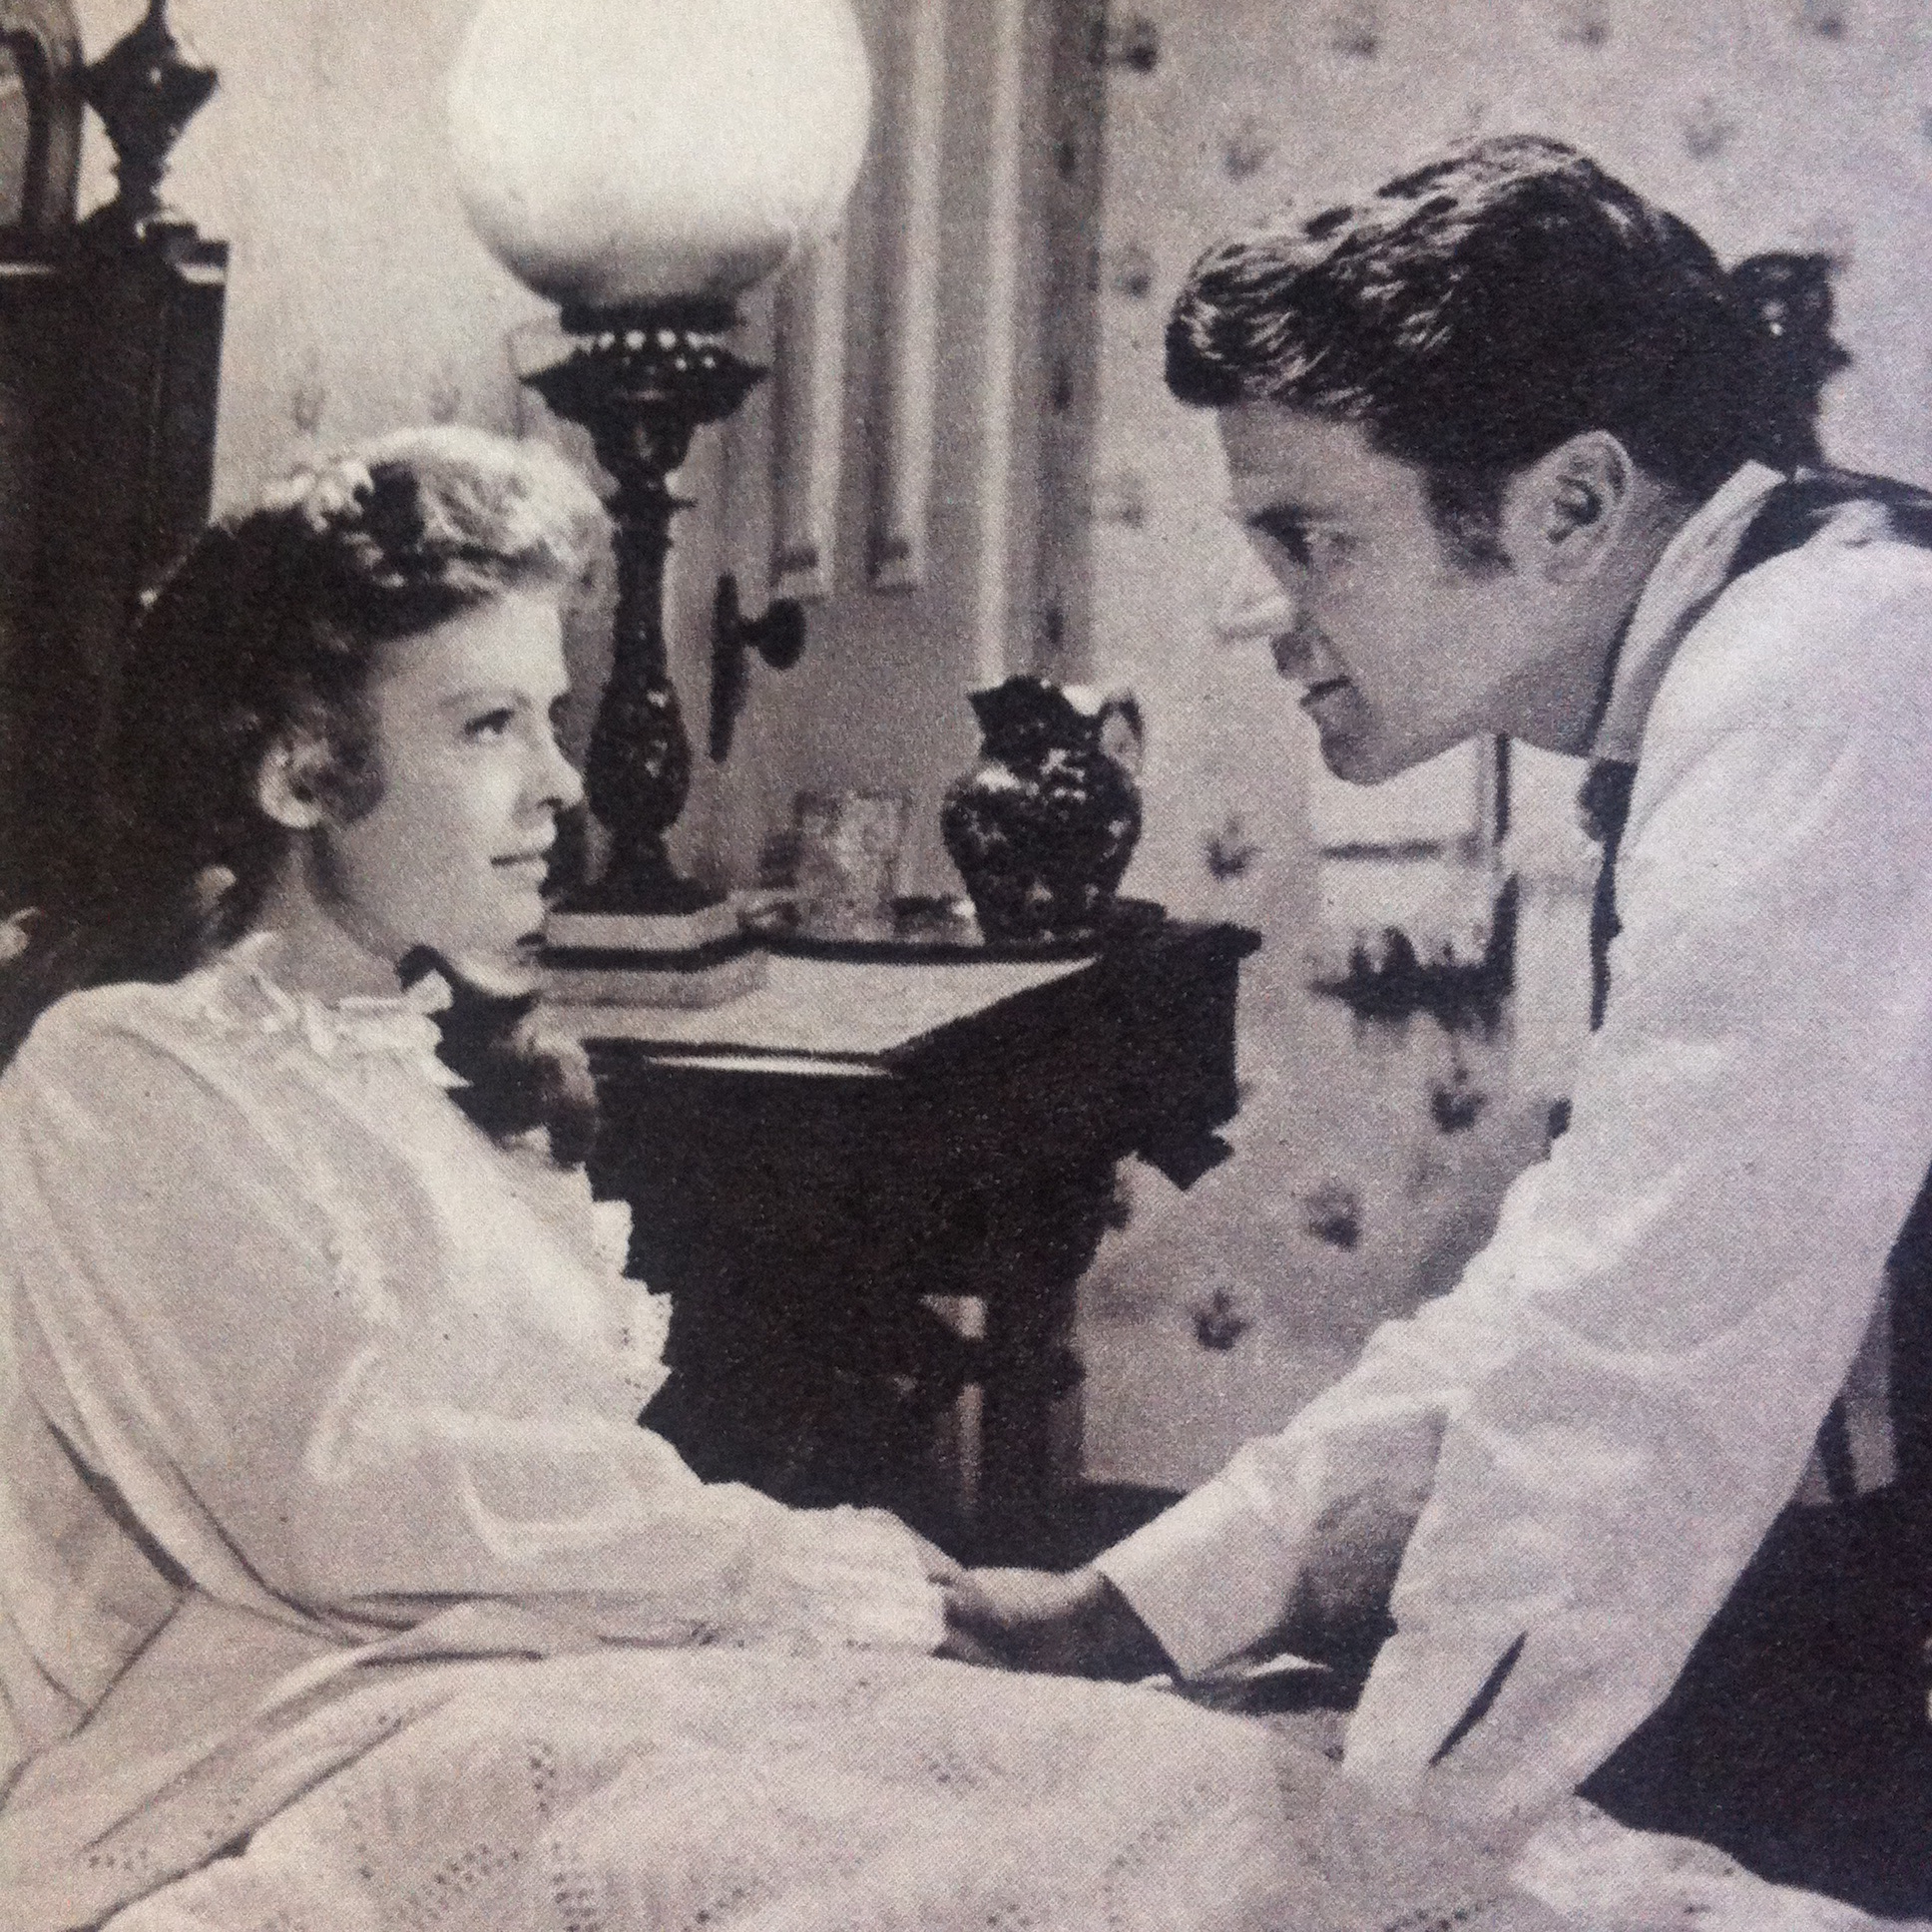 Don Murray and Patricia Owens in These Thousand Hills (1959)